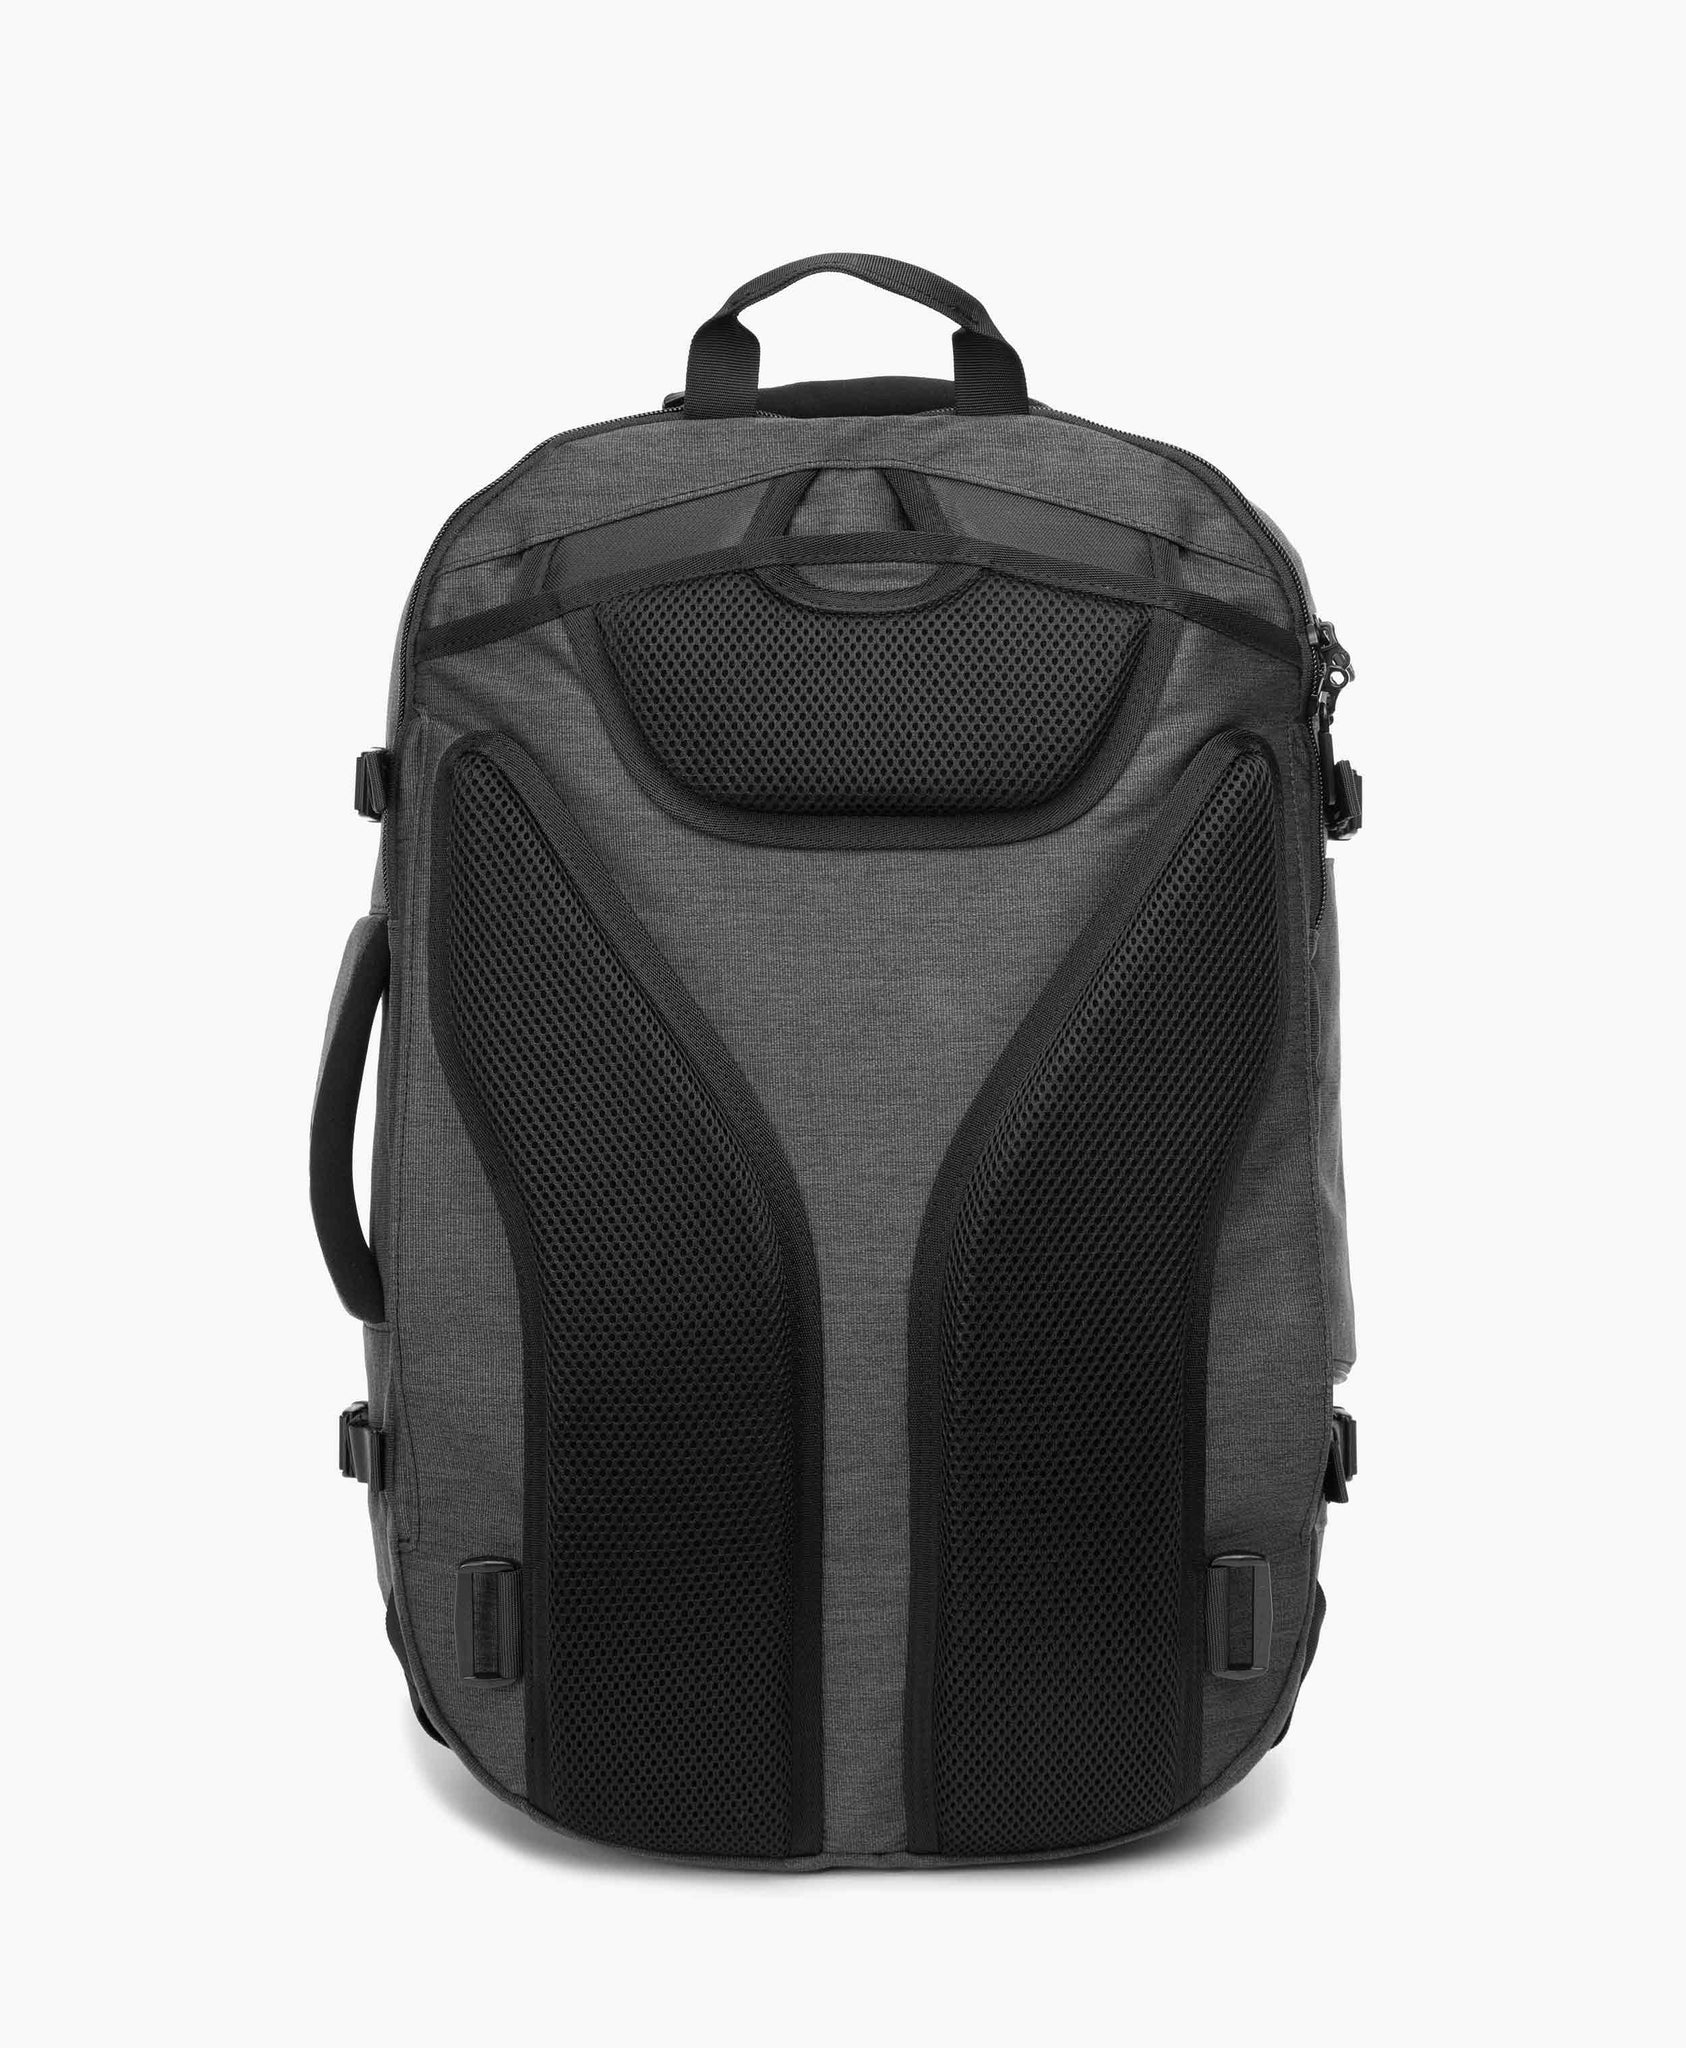 ff18017ae6 Minimalist Travel Backpack Reddit